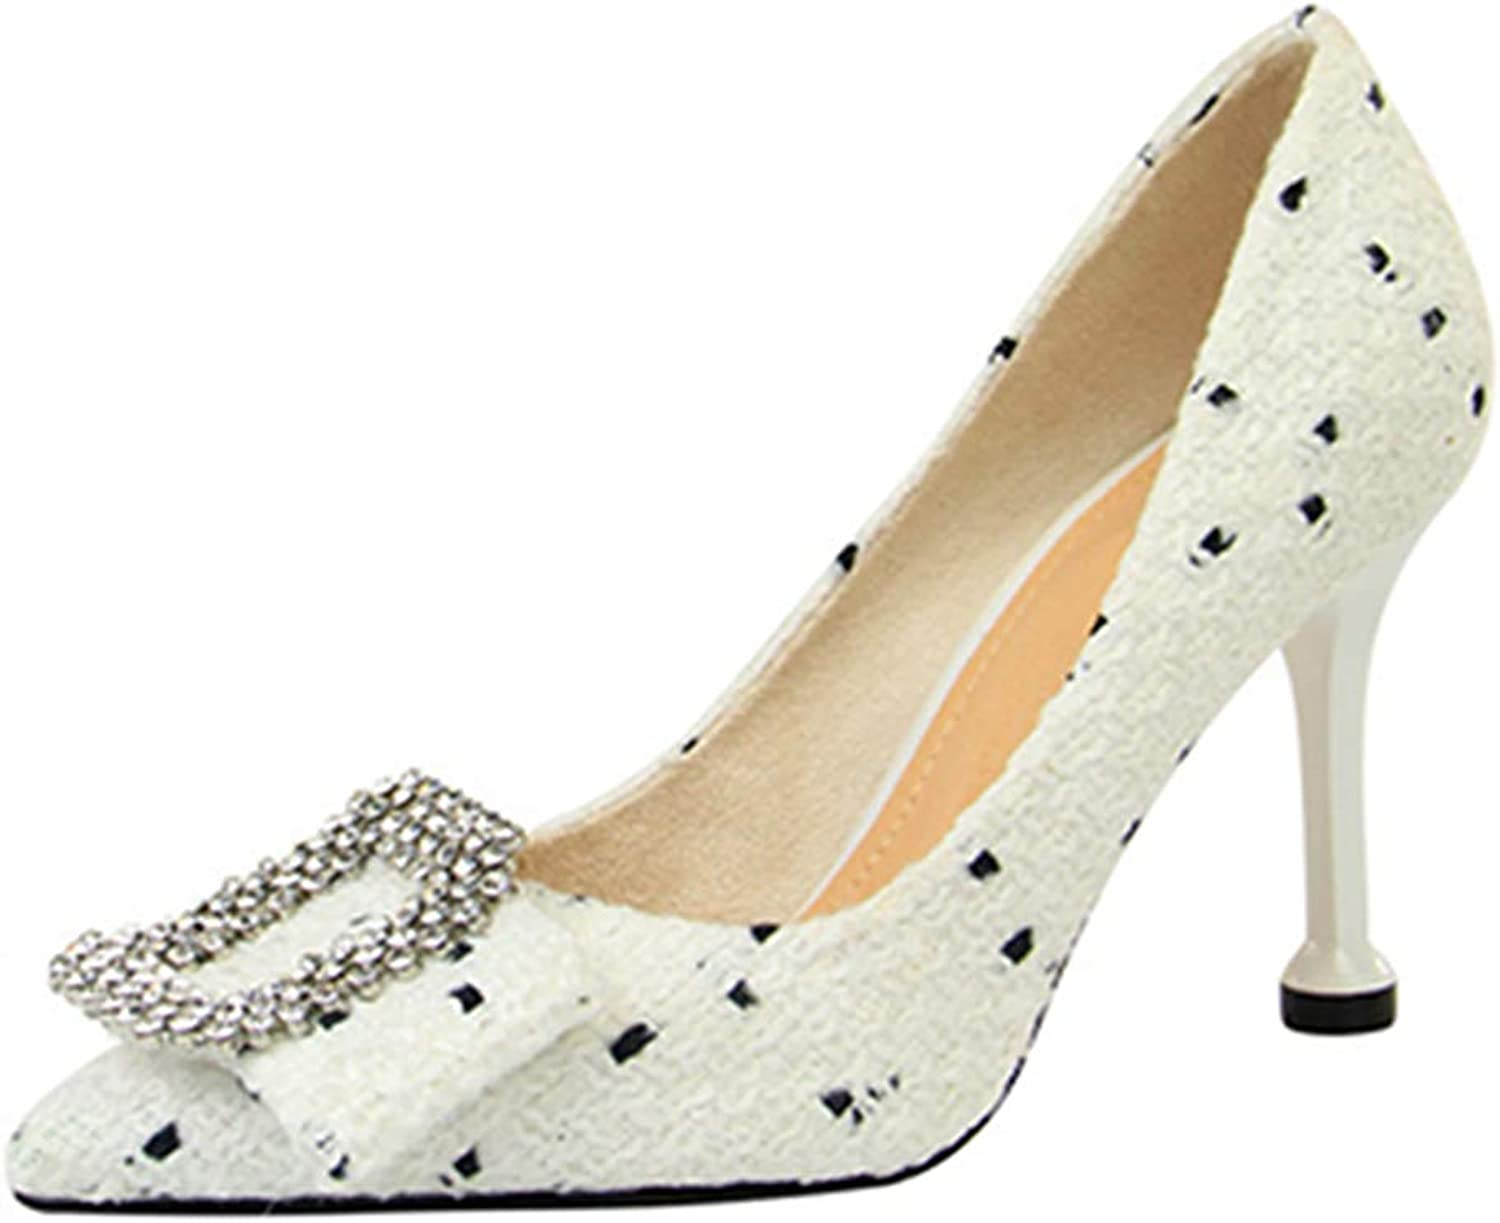 Kyle Walsh Pa Women's Pumps Ladies Elegant Stiletto Pointed Toe High-Heel shoes